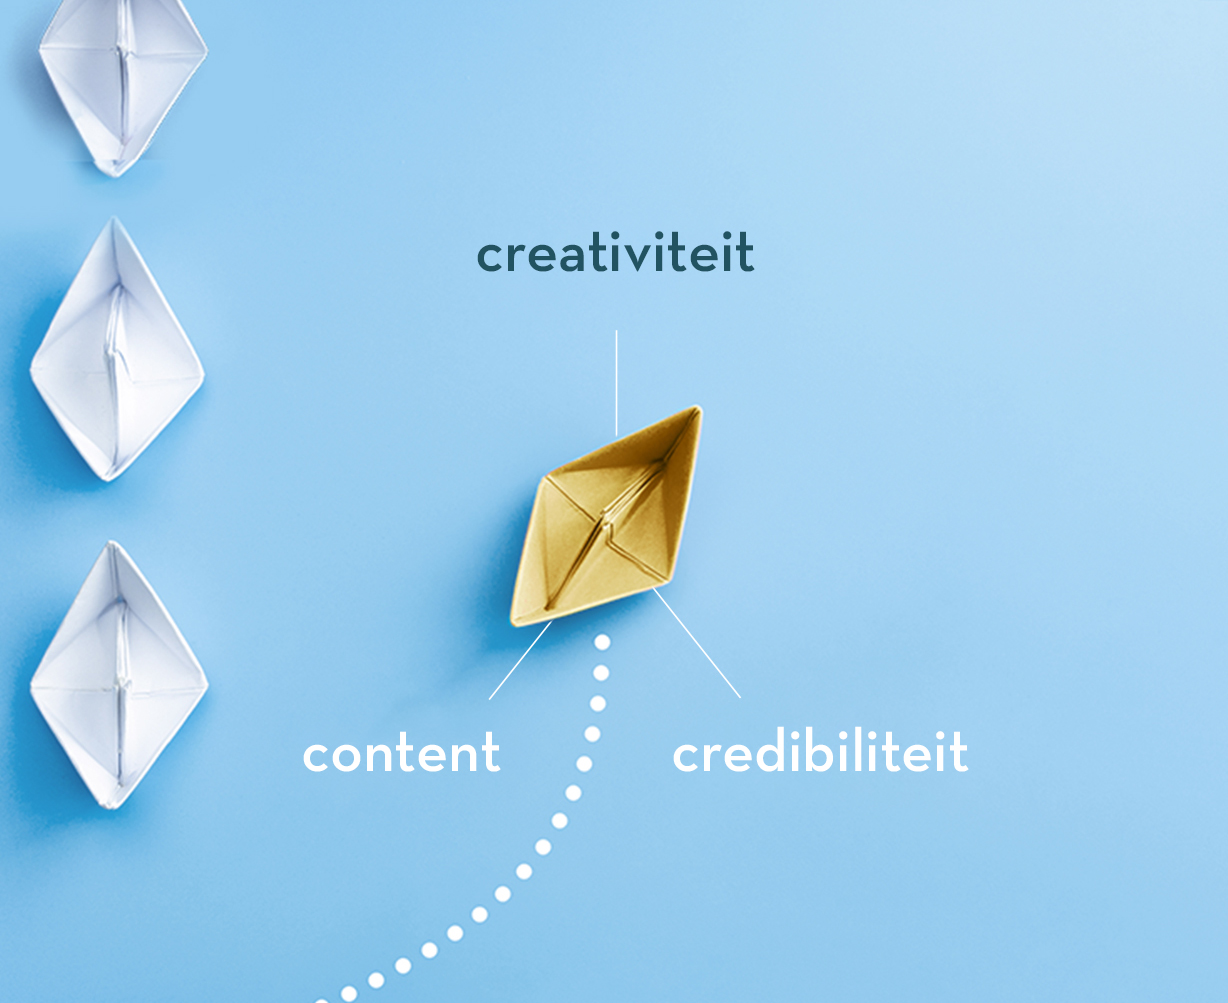 creativity, credibility and content